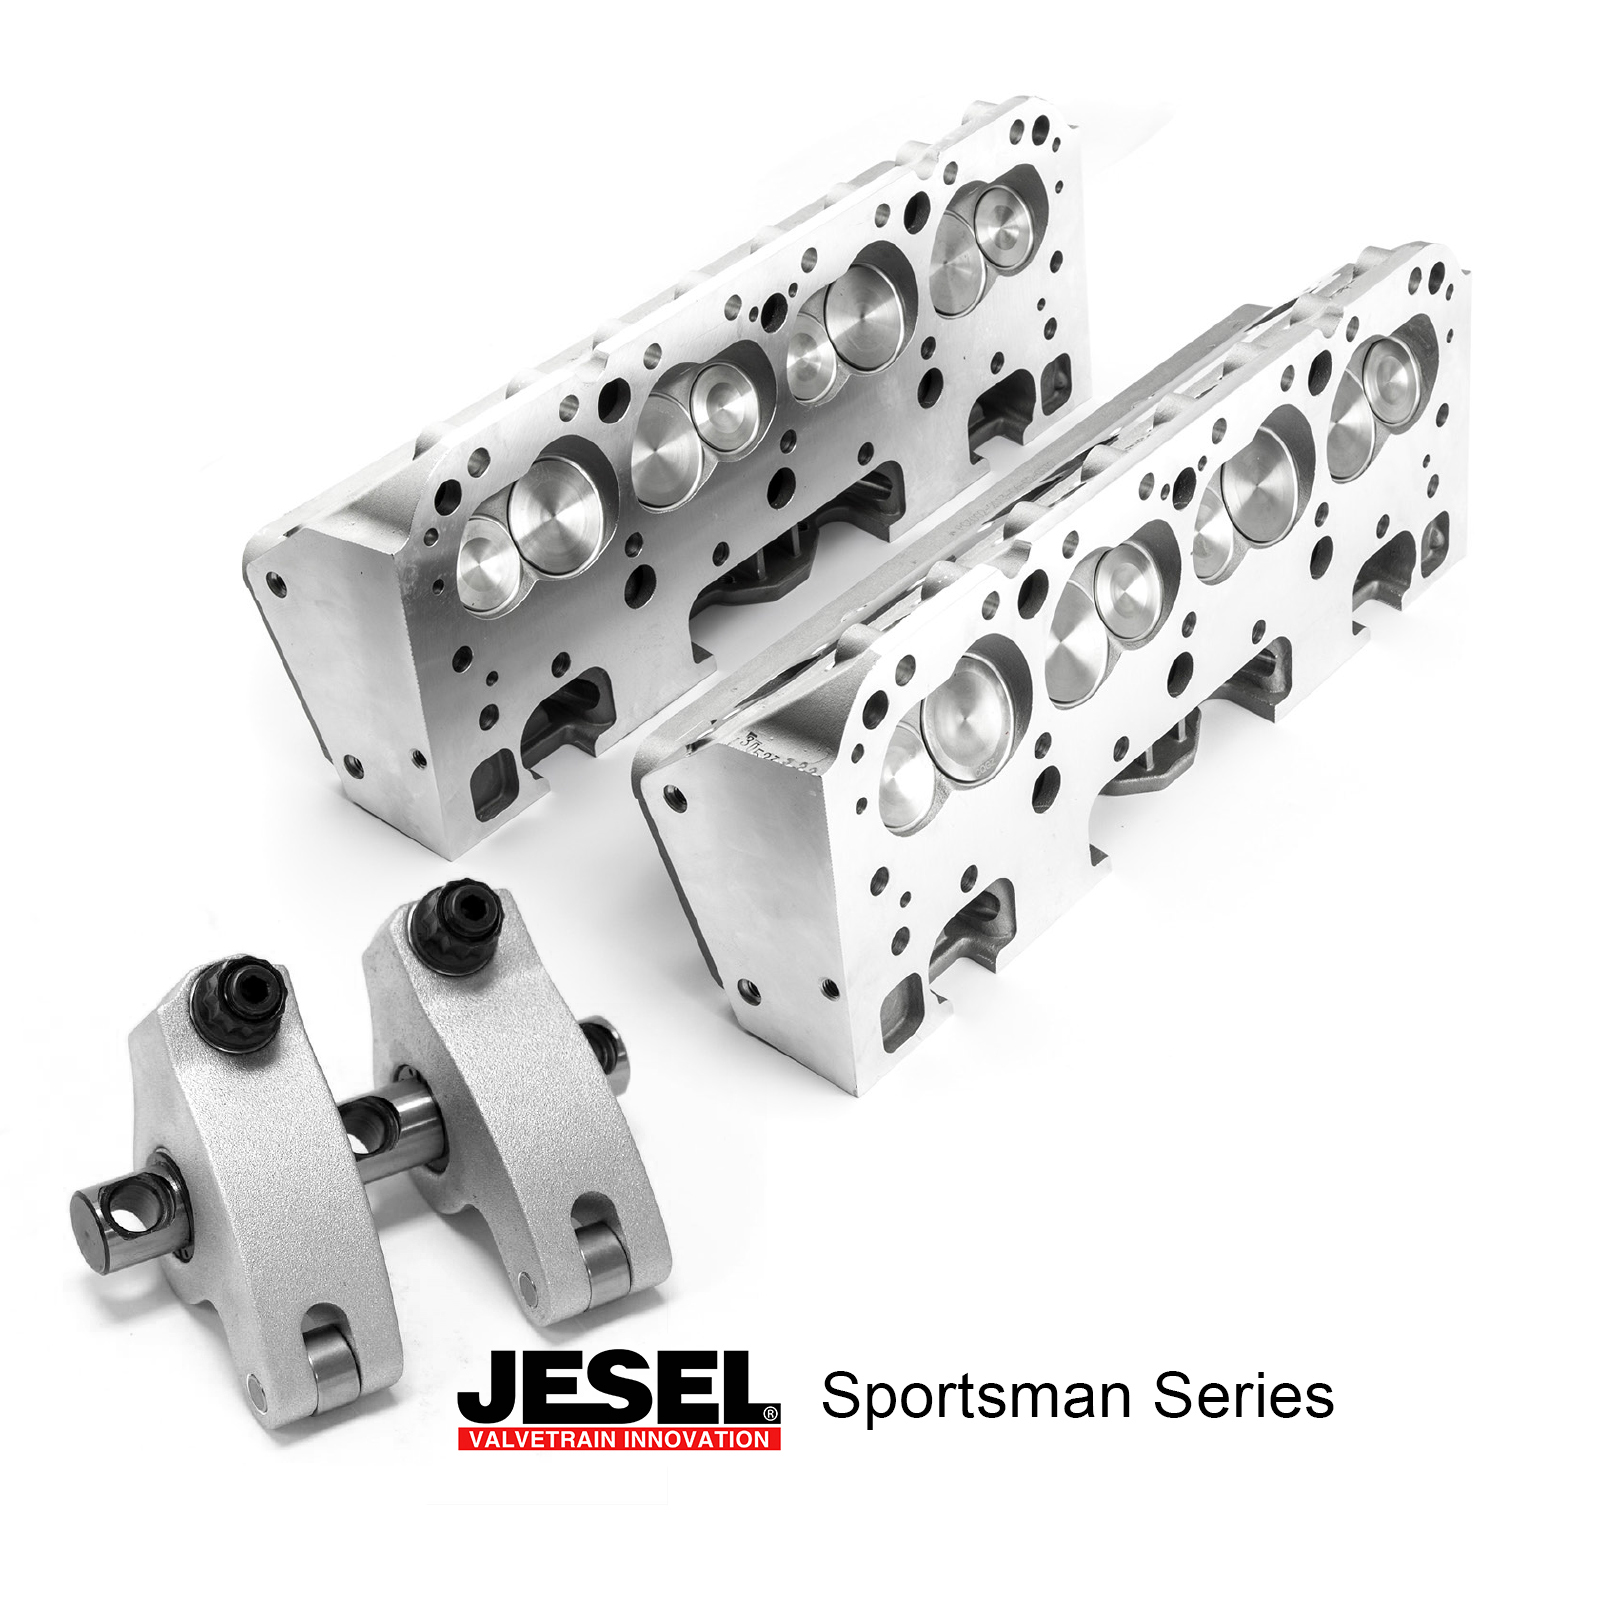 Chevy SBC 350 JESEL Solid Roller Race Package - 190cc Aluminum Cylinder Heads